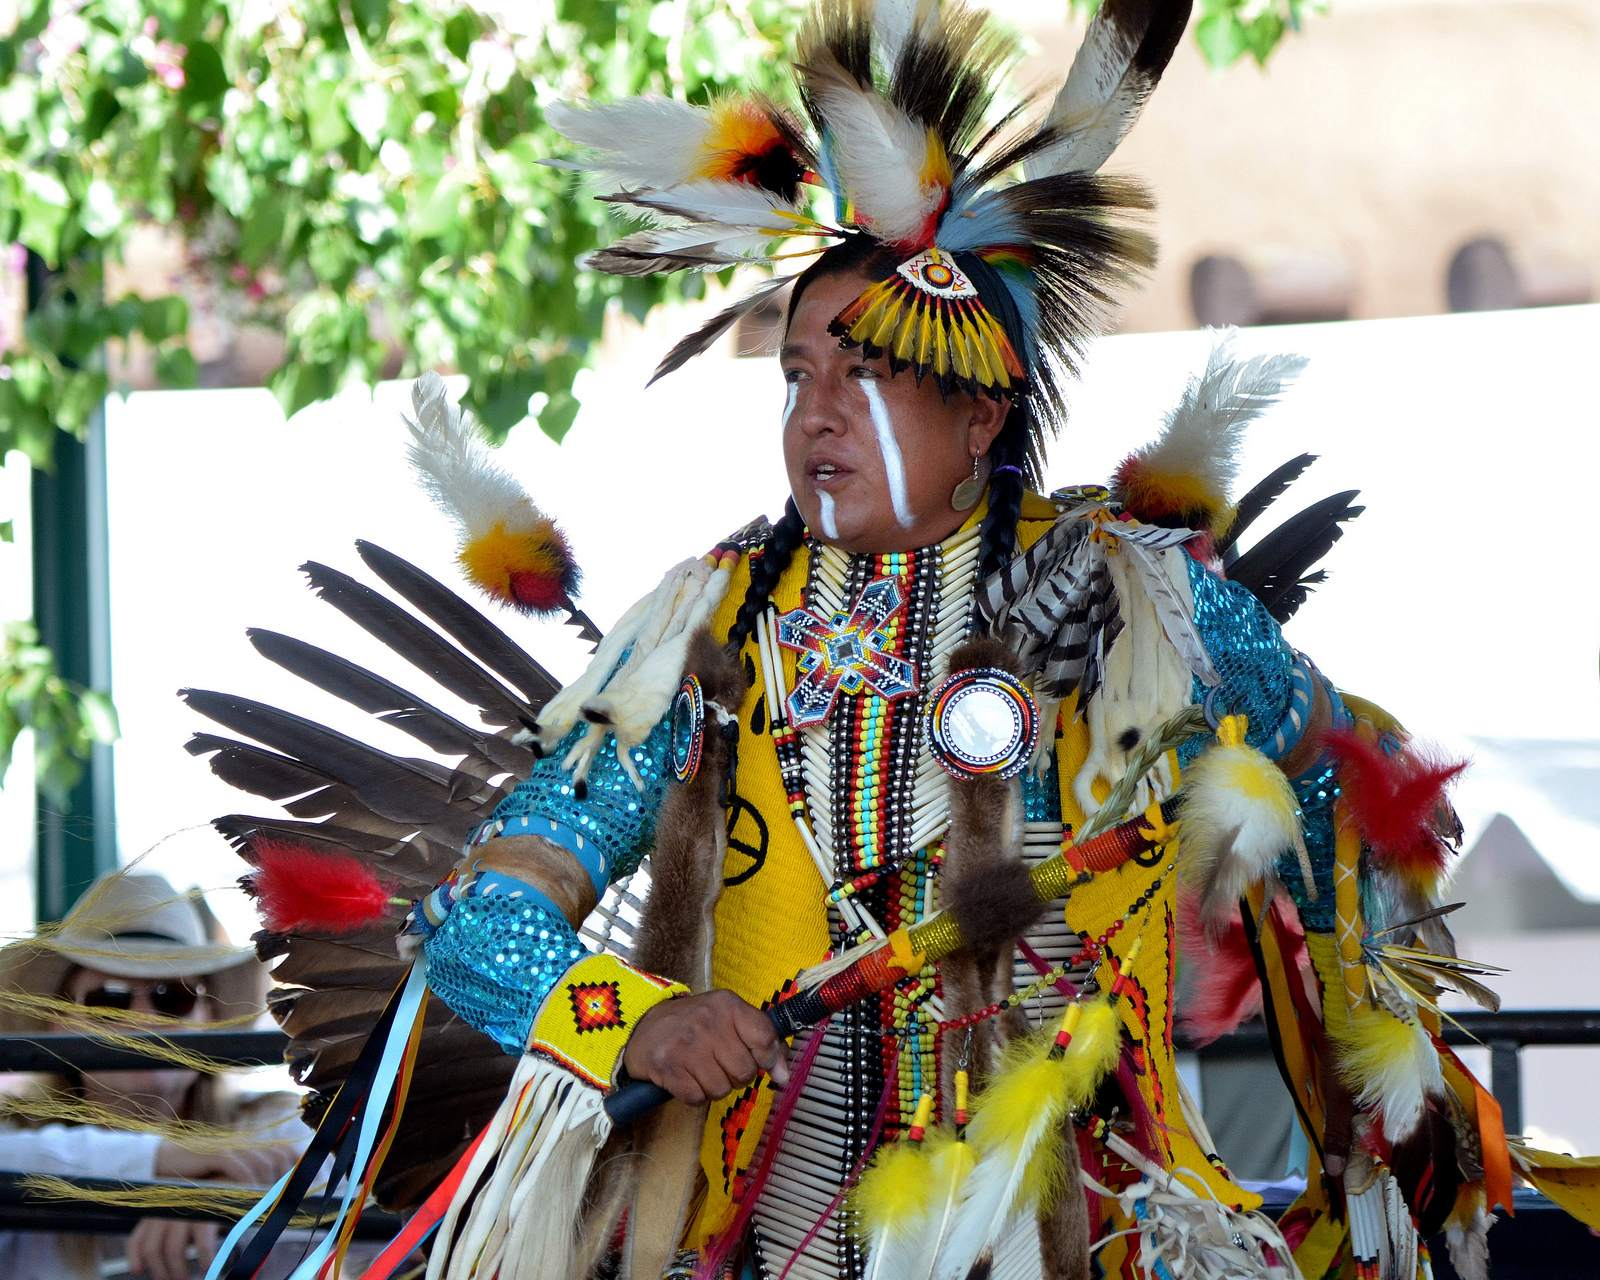 native american clothing12 Native American Clothing Contest at Santa Fe Indian Market